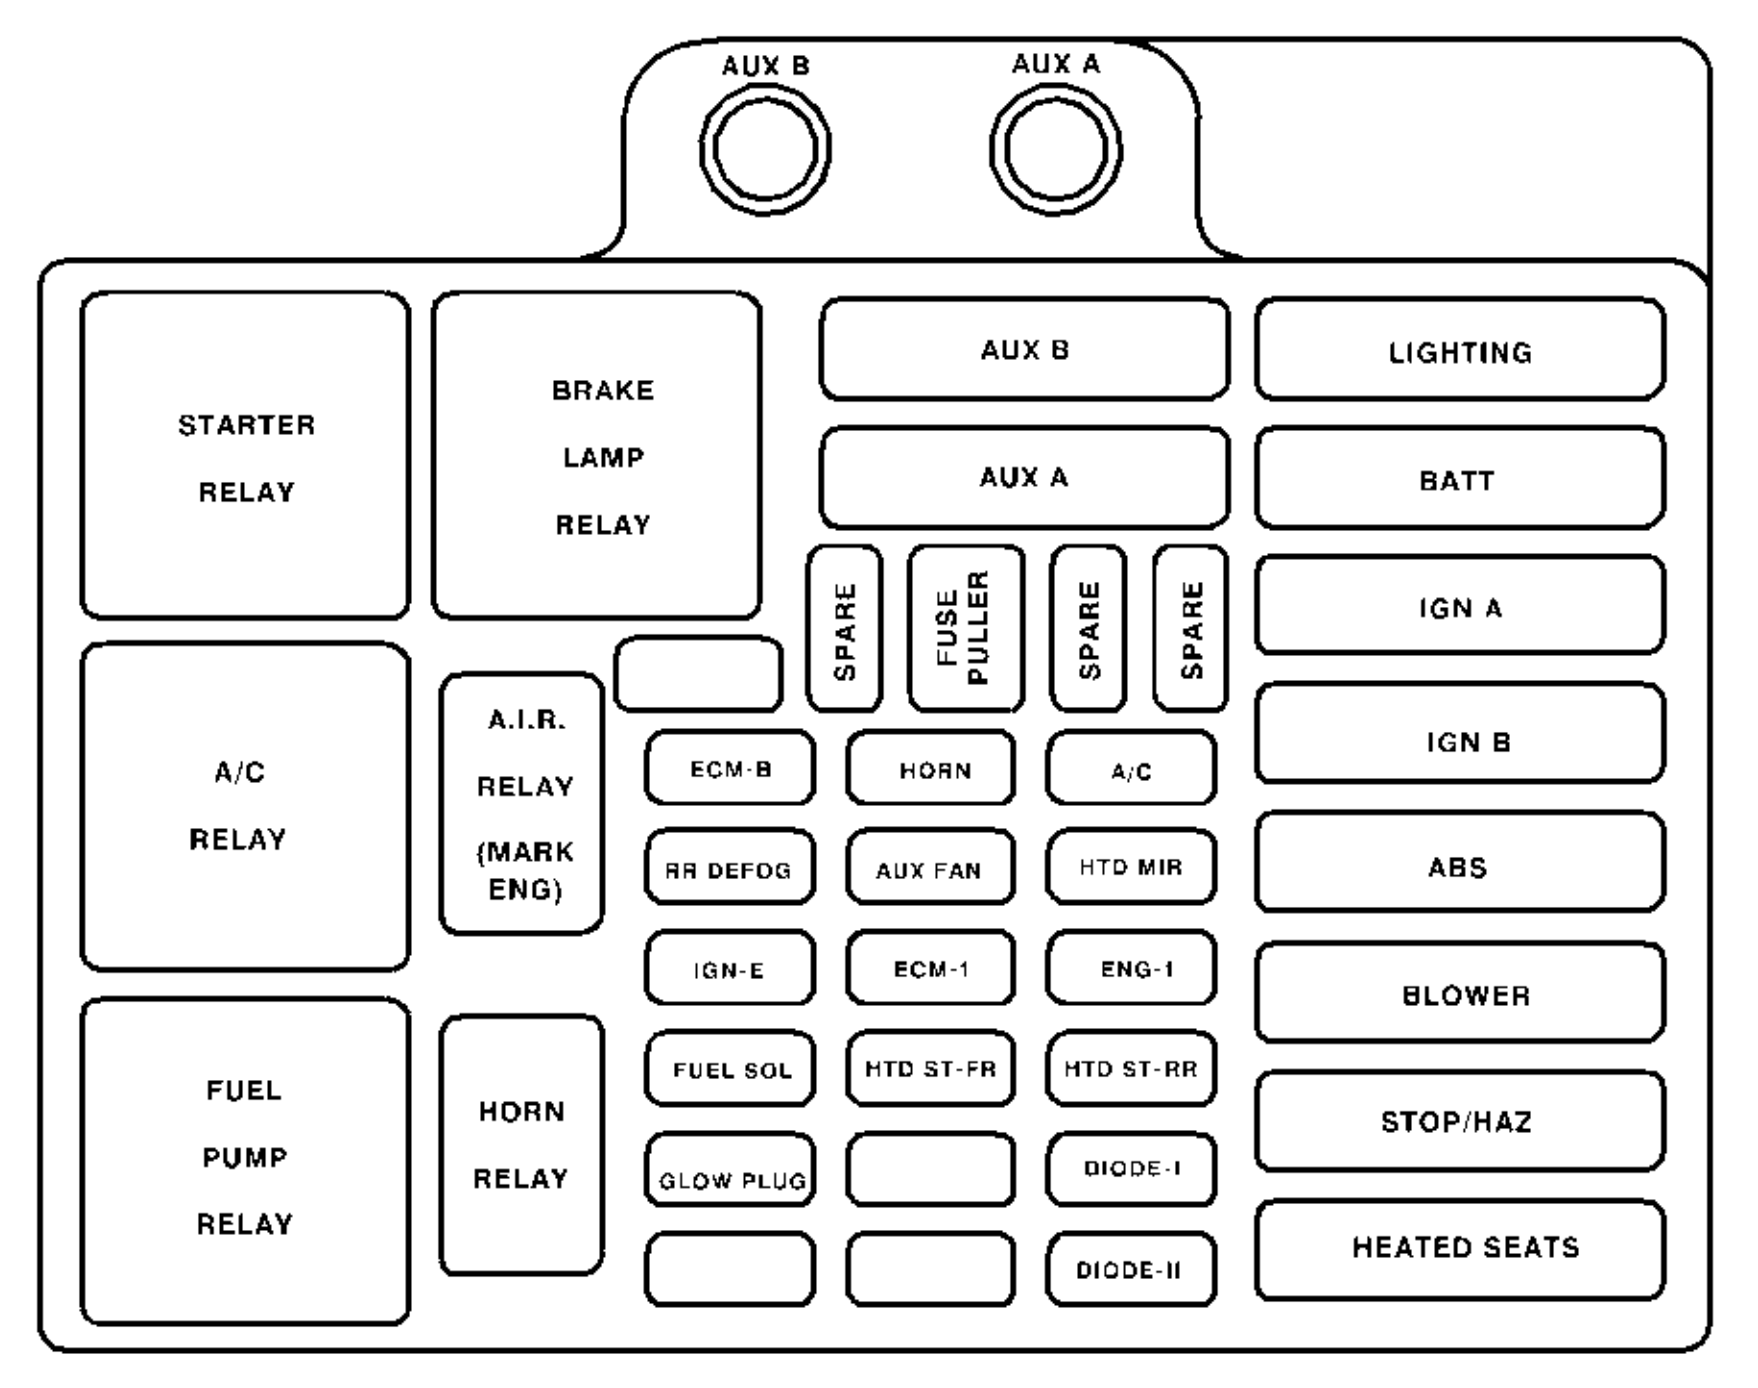 ... 1989 Chevy Silverado Fuse Box Diagram • Wiring Diagram For ...